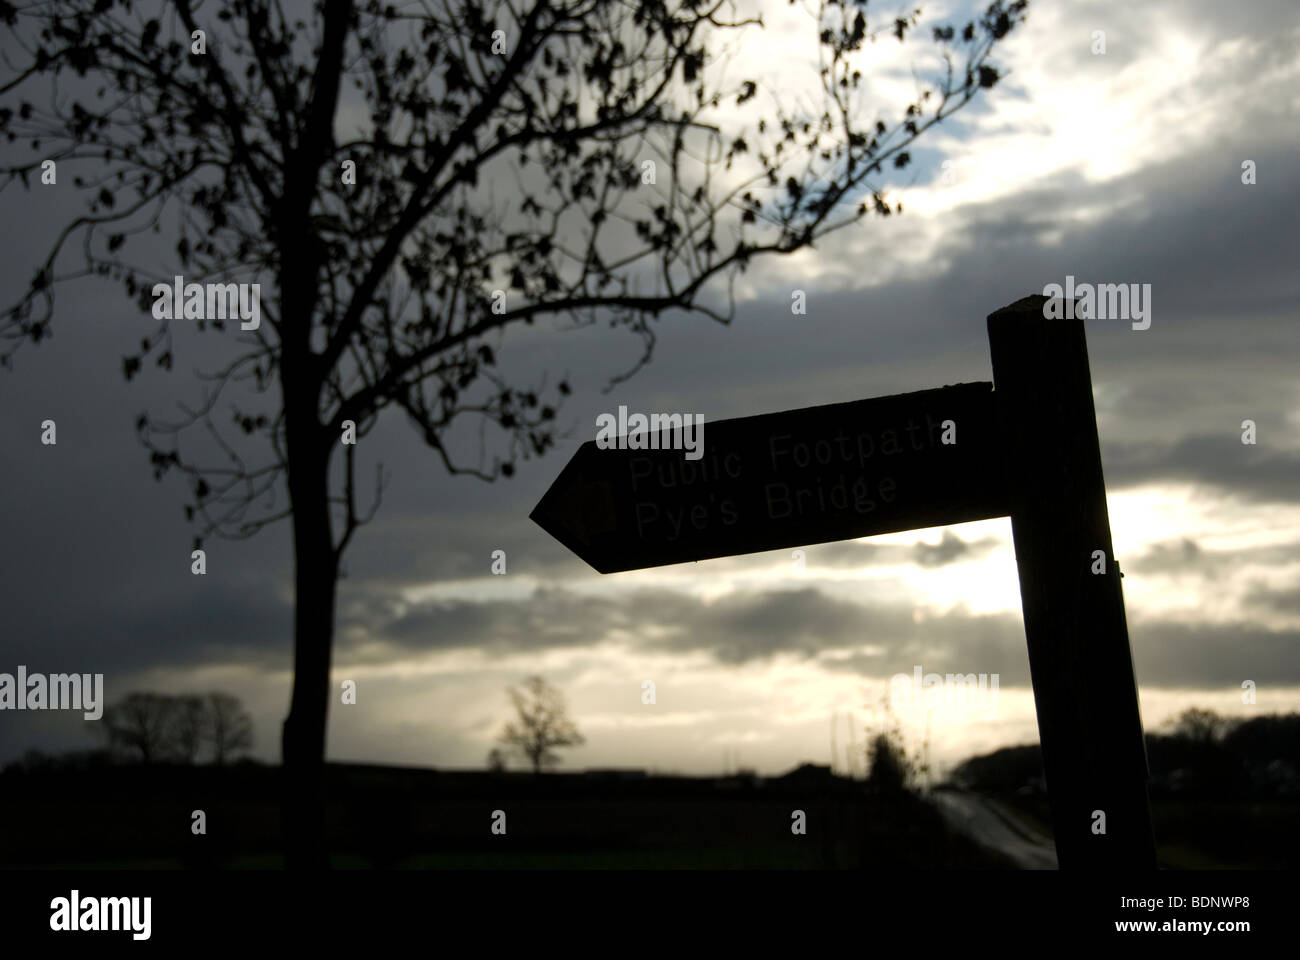 Silhouette of a bridleway sign - Stock Image